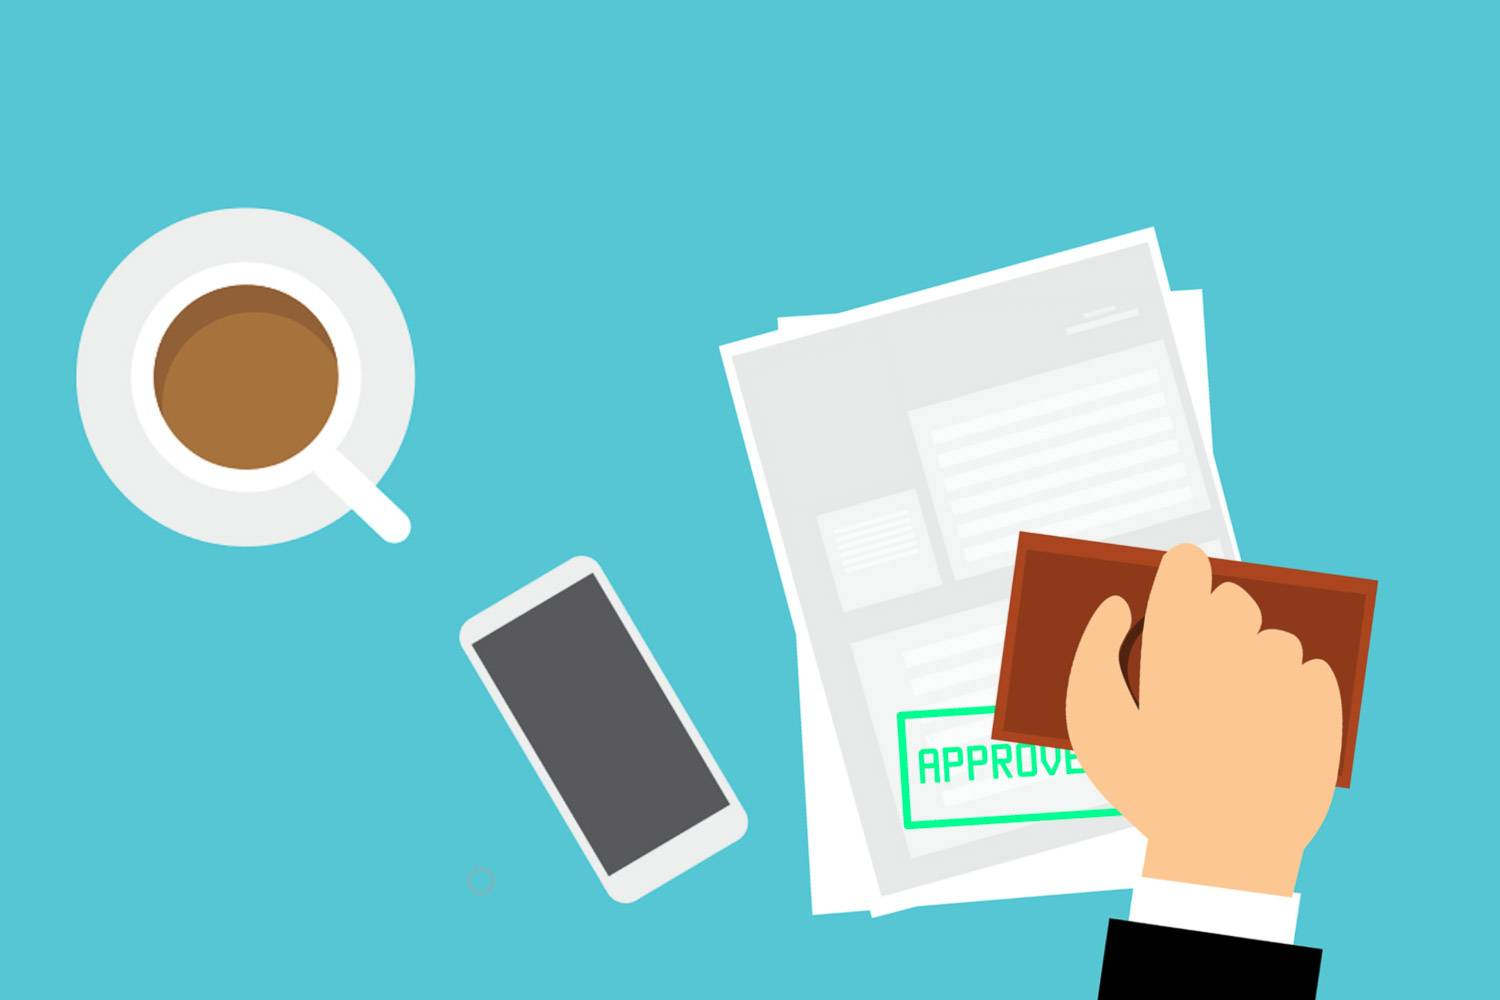 Image of paperwork being approved with a stamp, along with a cup of coffee and cell phone